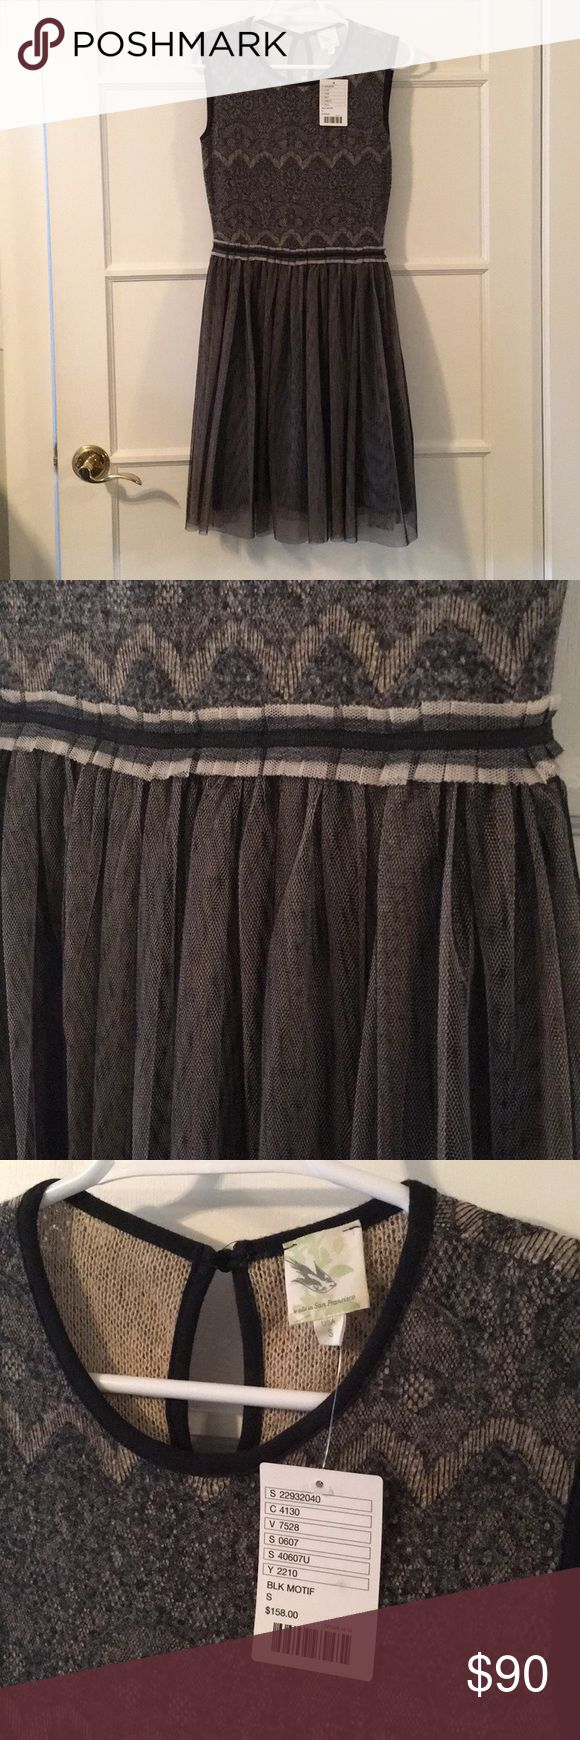 Anthropology dress NWT (from smoke free and pet free home), gorgeous Anthropology dress. Tule skirt with a detailed top half. Ribbon attached to tie a bow in the back. Super cute!! Anthropologie Dresses Midi